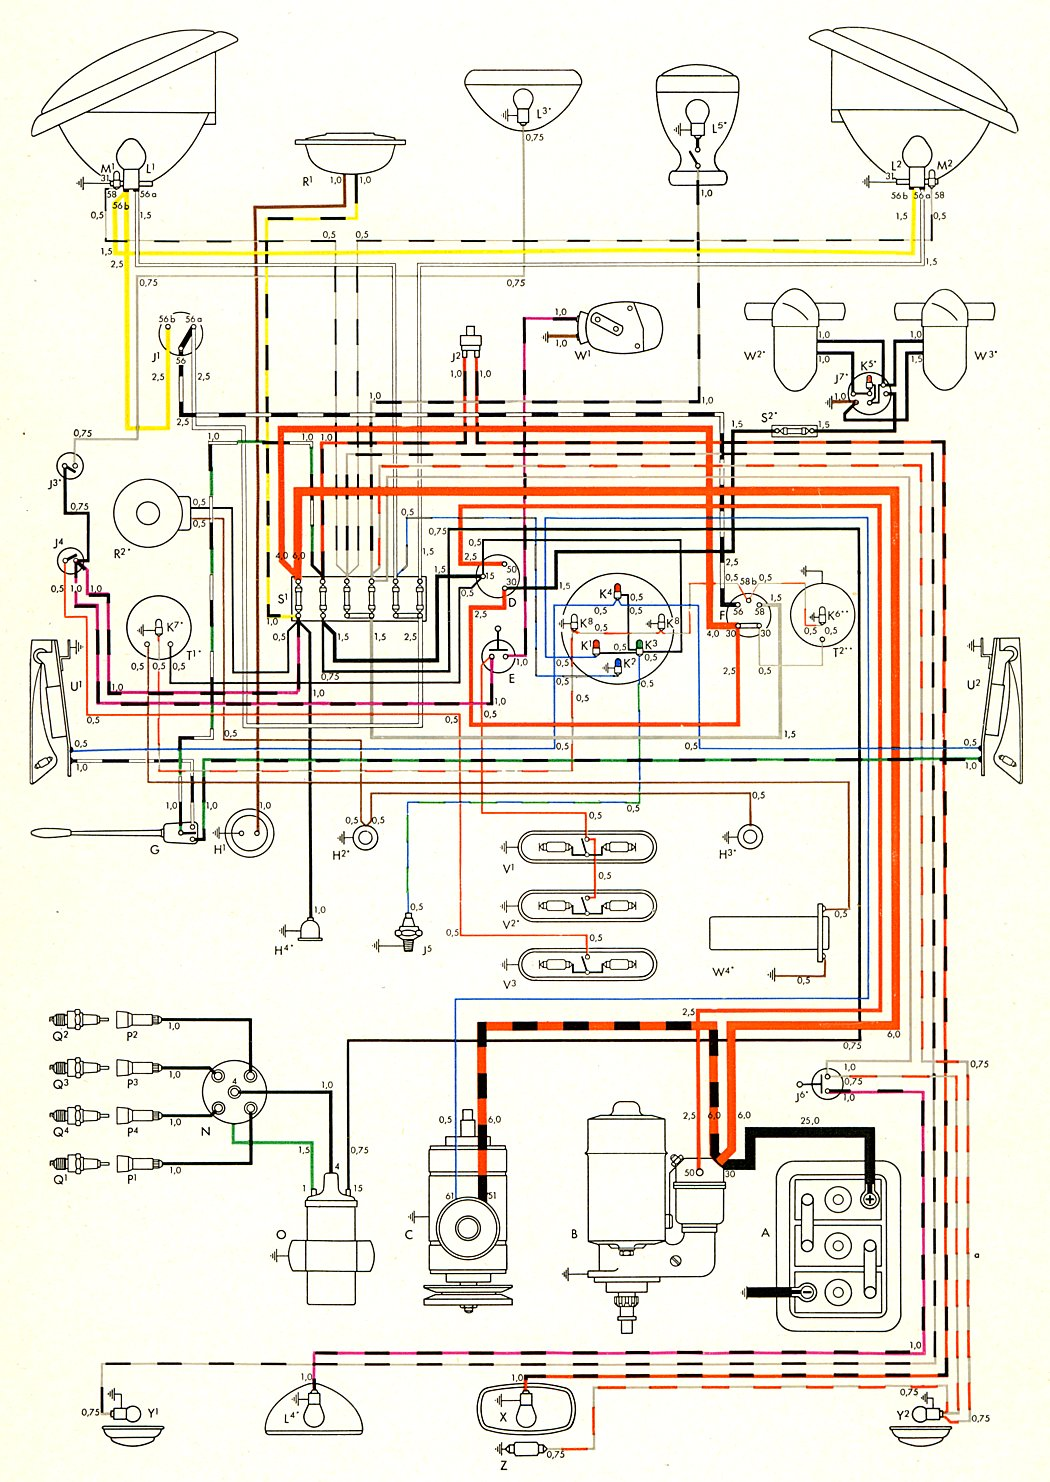 Bus Nov on 1959 Vw Wiring Diagram